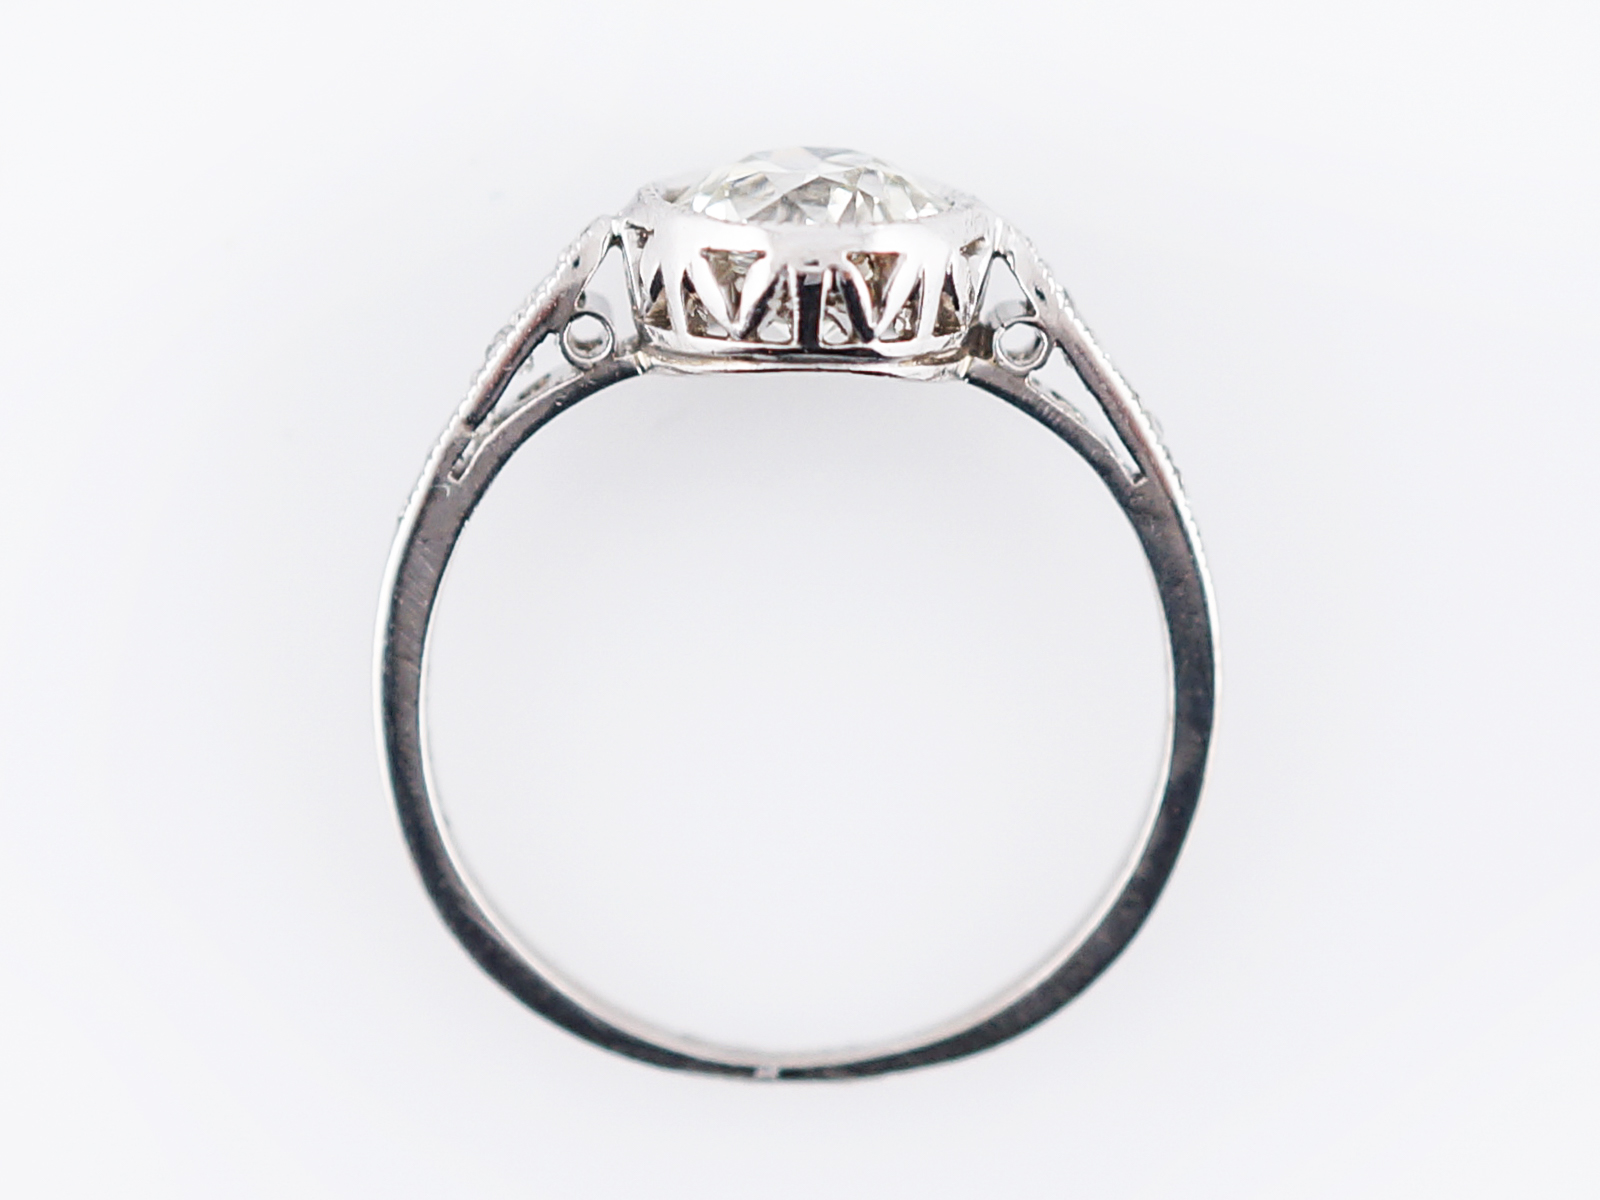 tag low that sparkle rings top engagement wedding enchanting profile